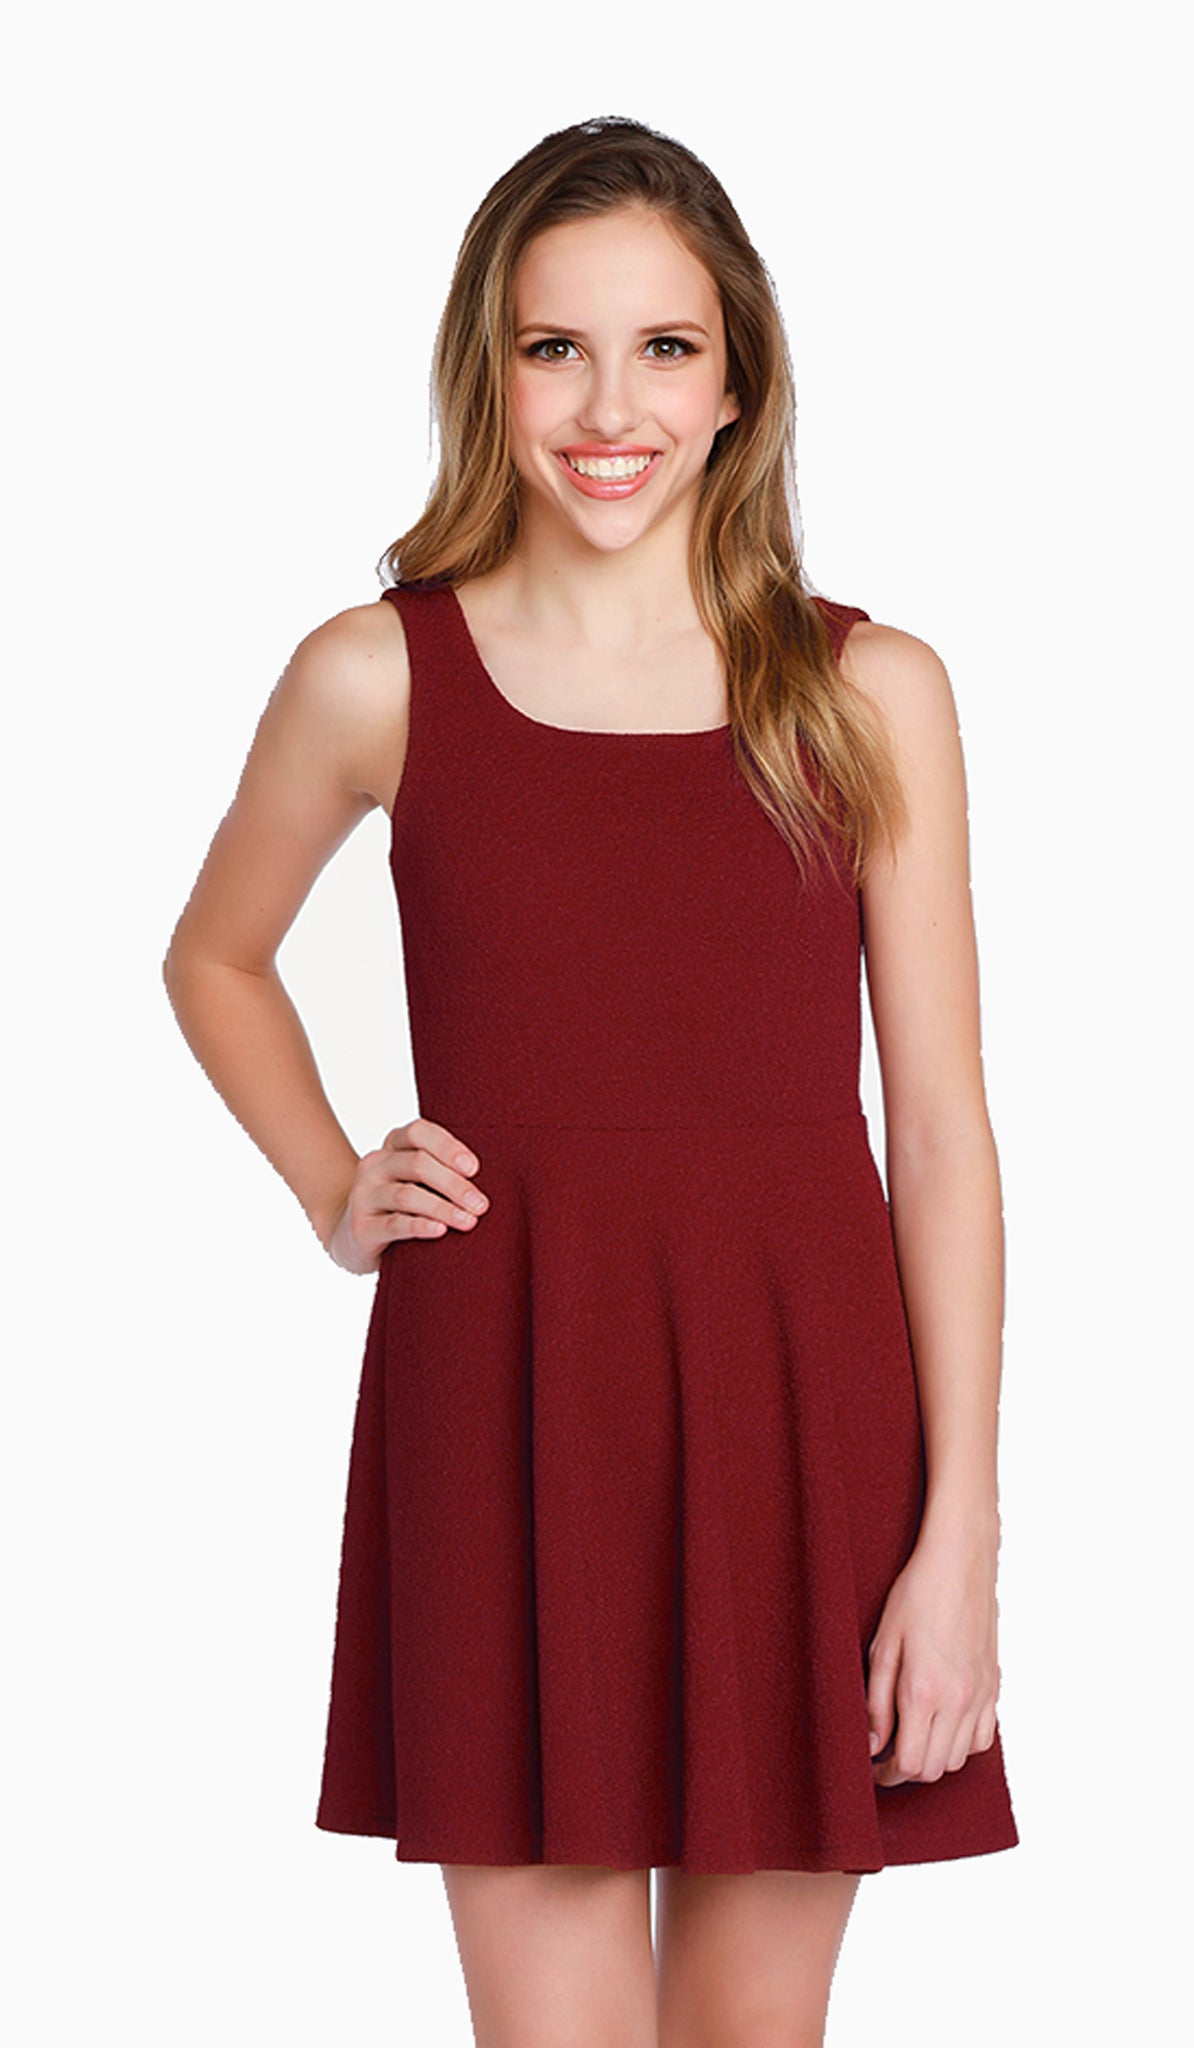 THE RUBY DRESS - Sallymiller.com - [variant title] - | Event & Party Dresses for Tween Girls & Juniors | Weddings Dresses, Bat Mitzvah Dresses, Sweet Sixteen Dresses, Graduation Dresses, Birthday Party Dresses, Bar Mitzvah Dresses, Cotillion Dresses